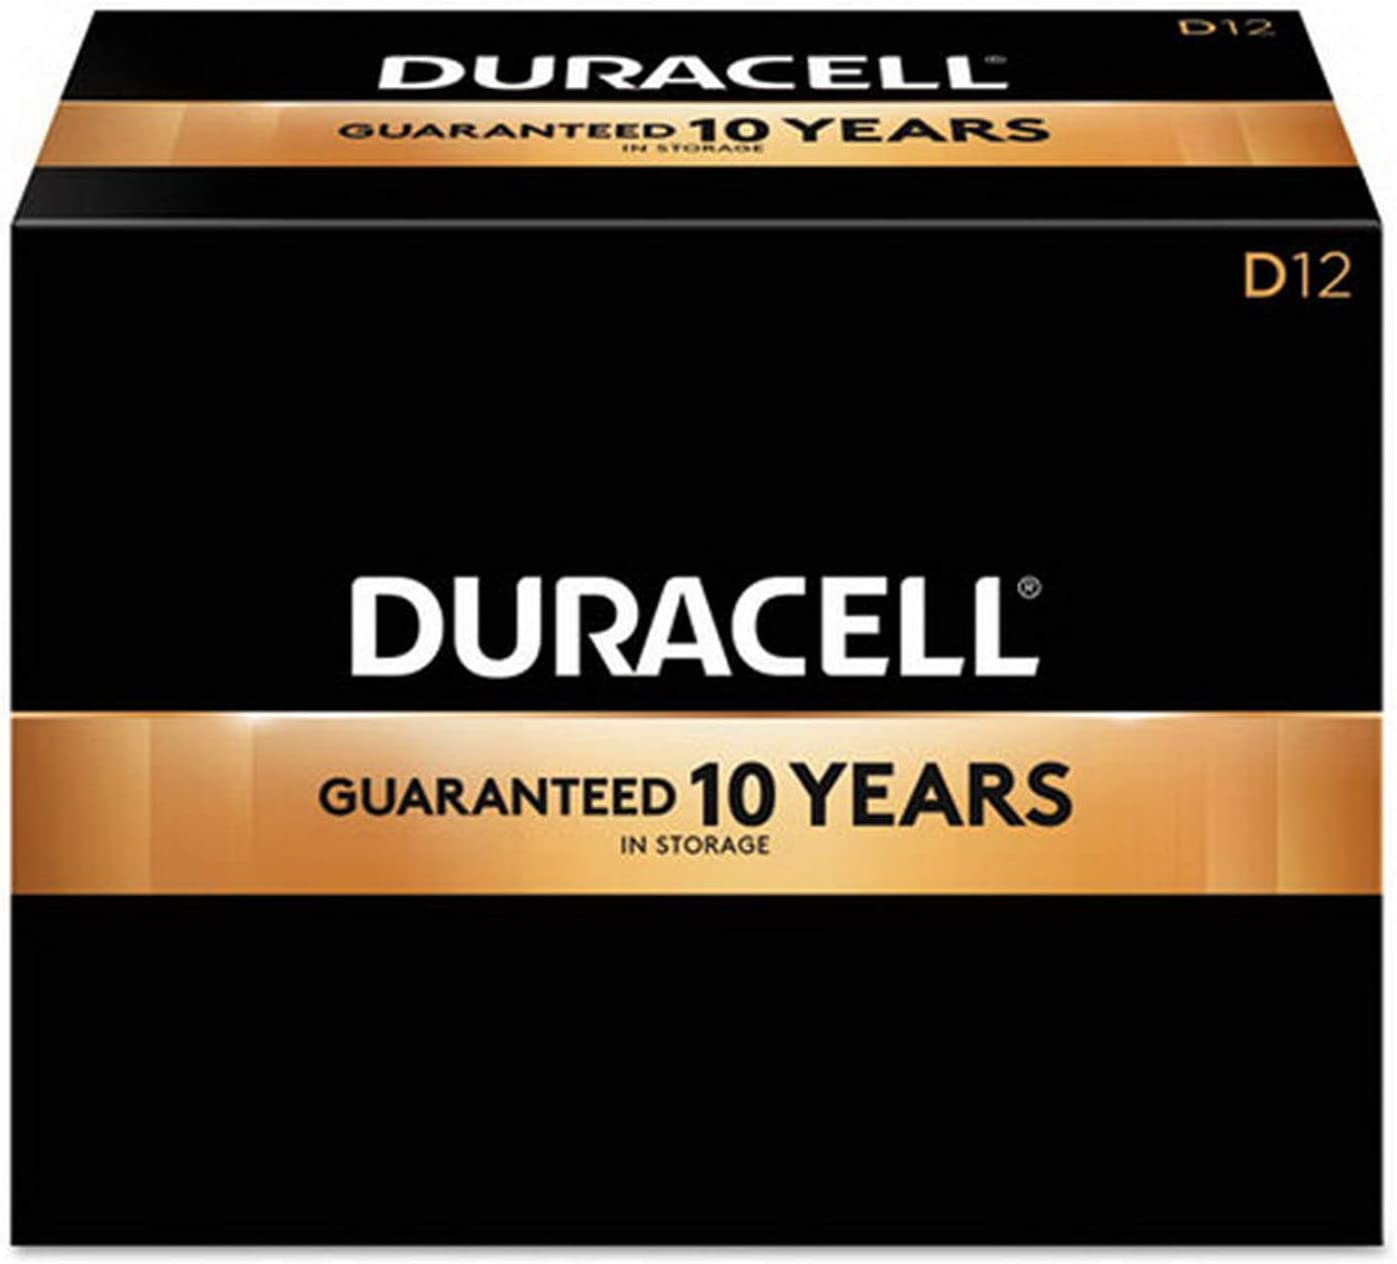 Duracell 1.5V CopperTop Alkaline Batteries, D, MN1300-12 Pack